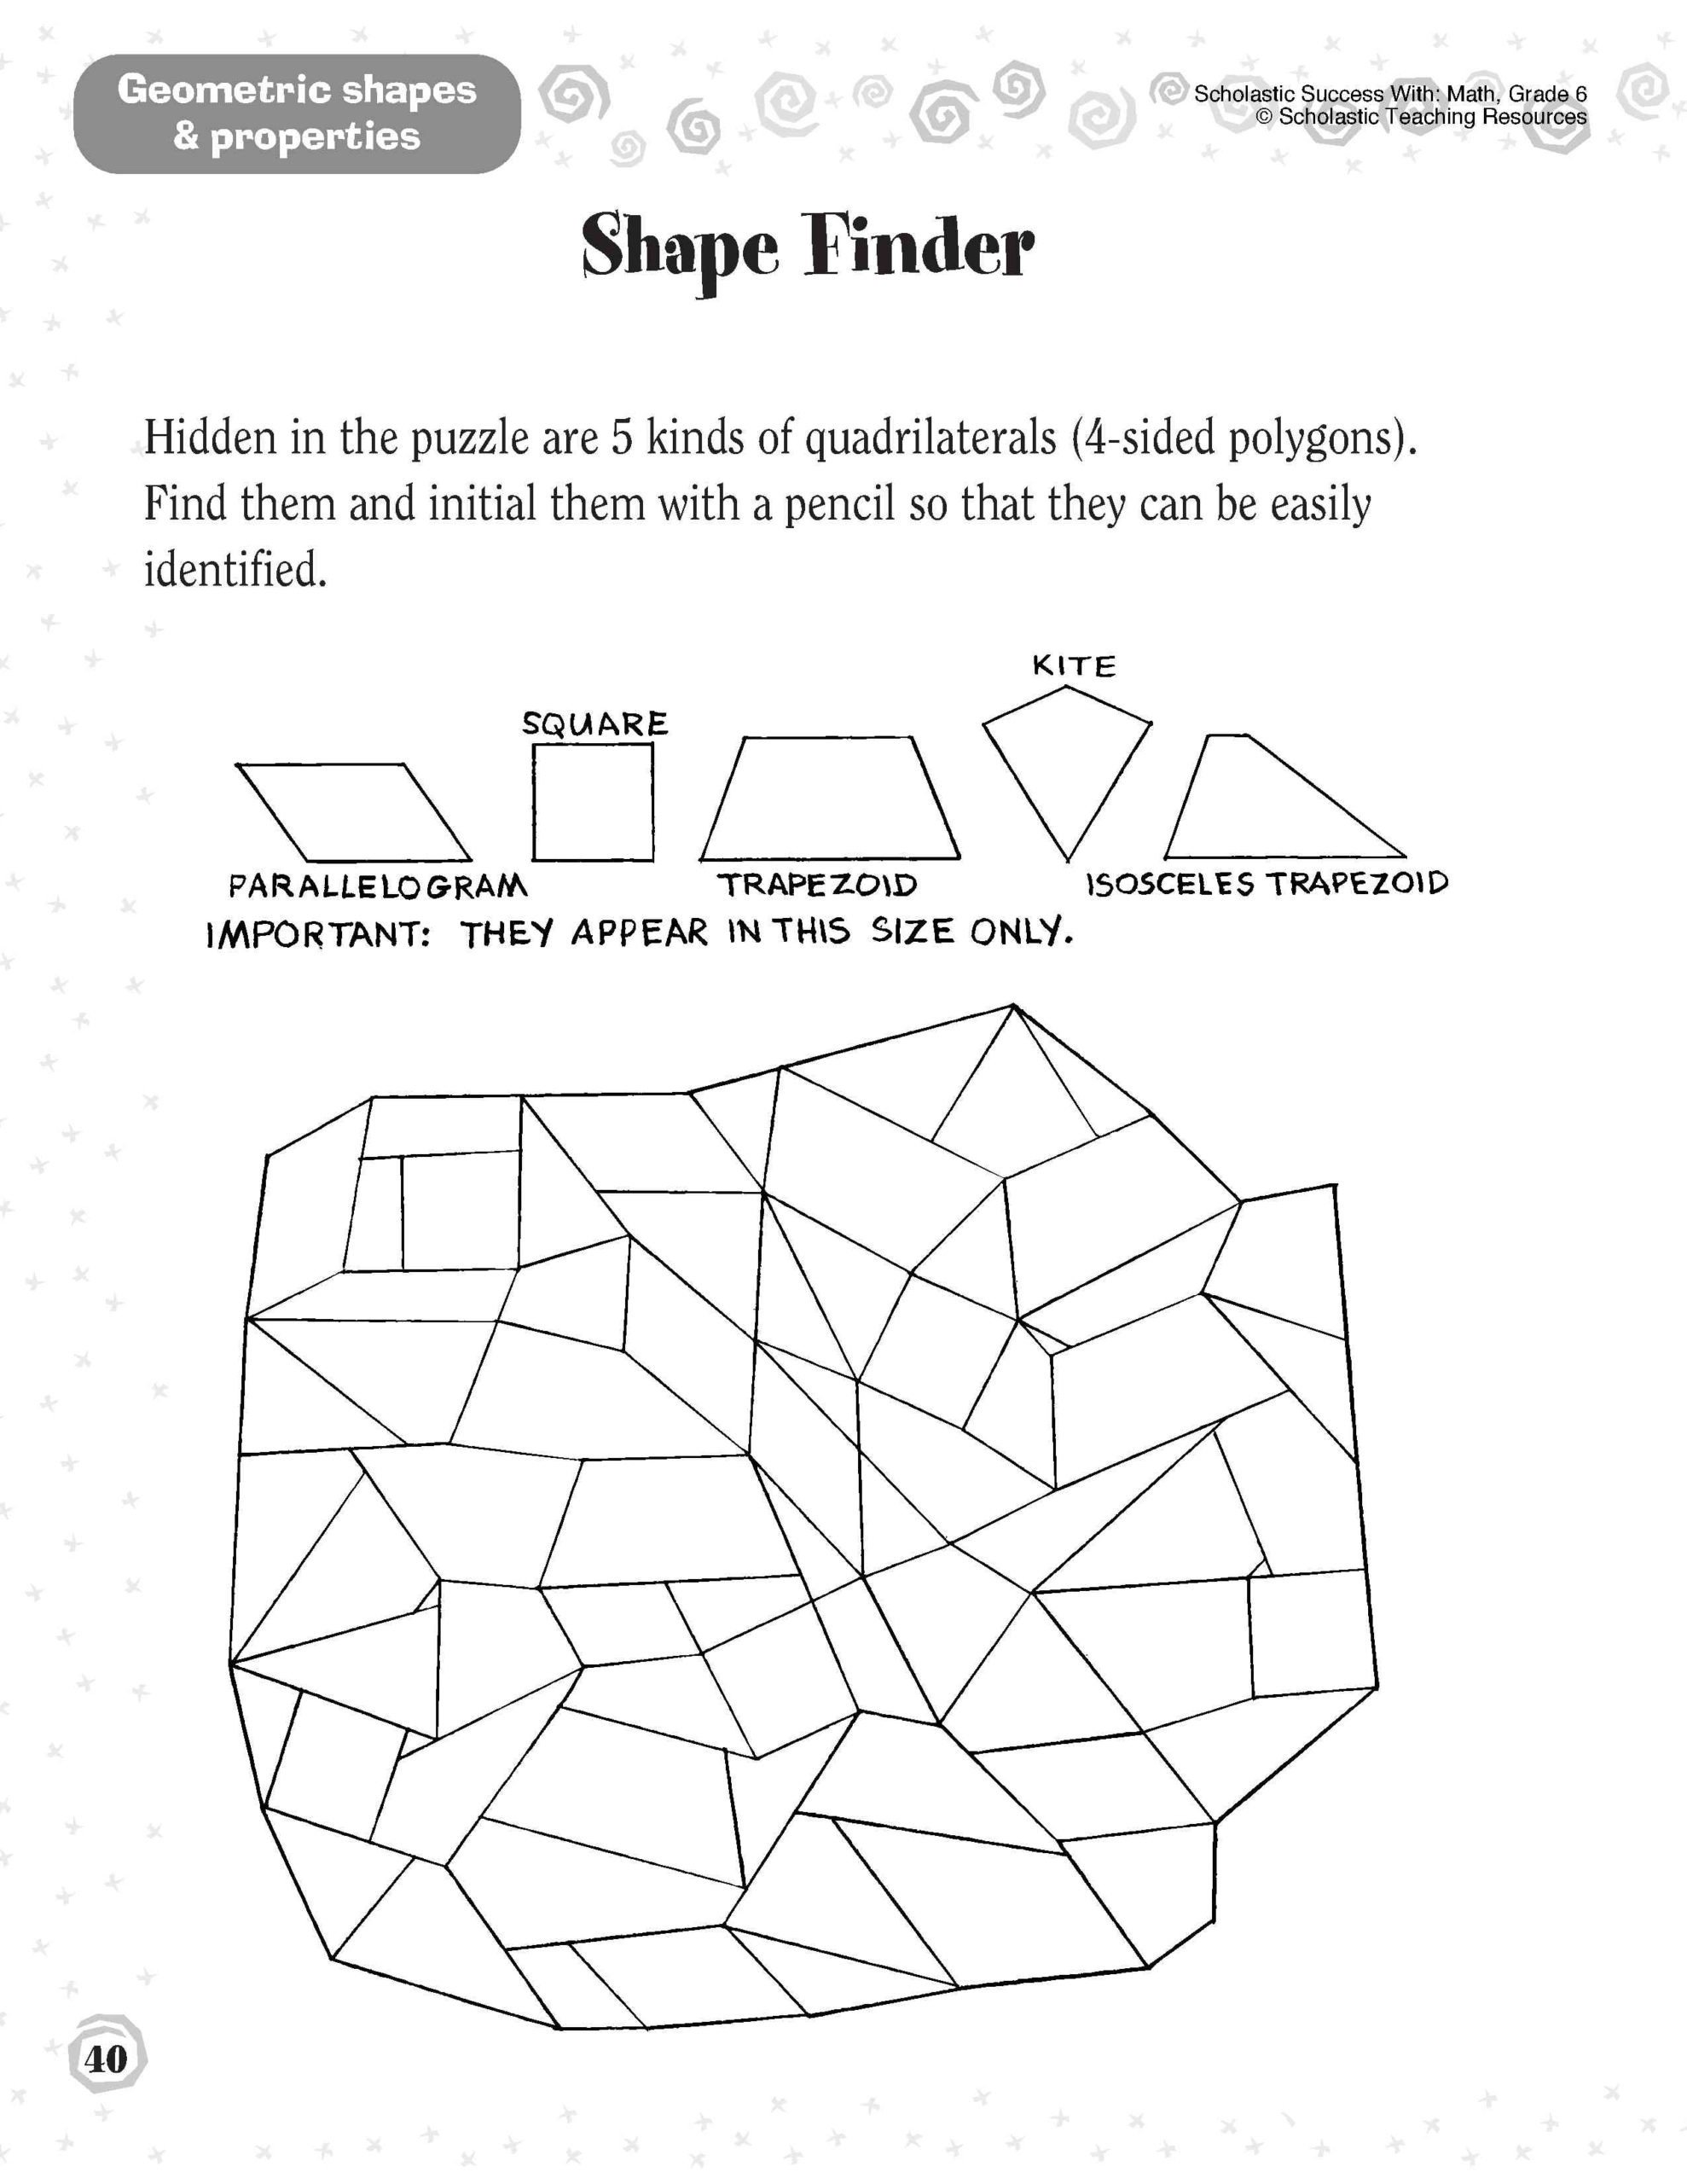 Geometric Shape Pattern Worksheets 1st Grade Shapes Worksheet Printable Worksheets and